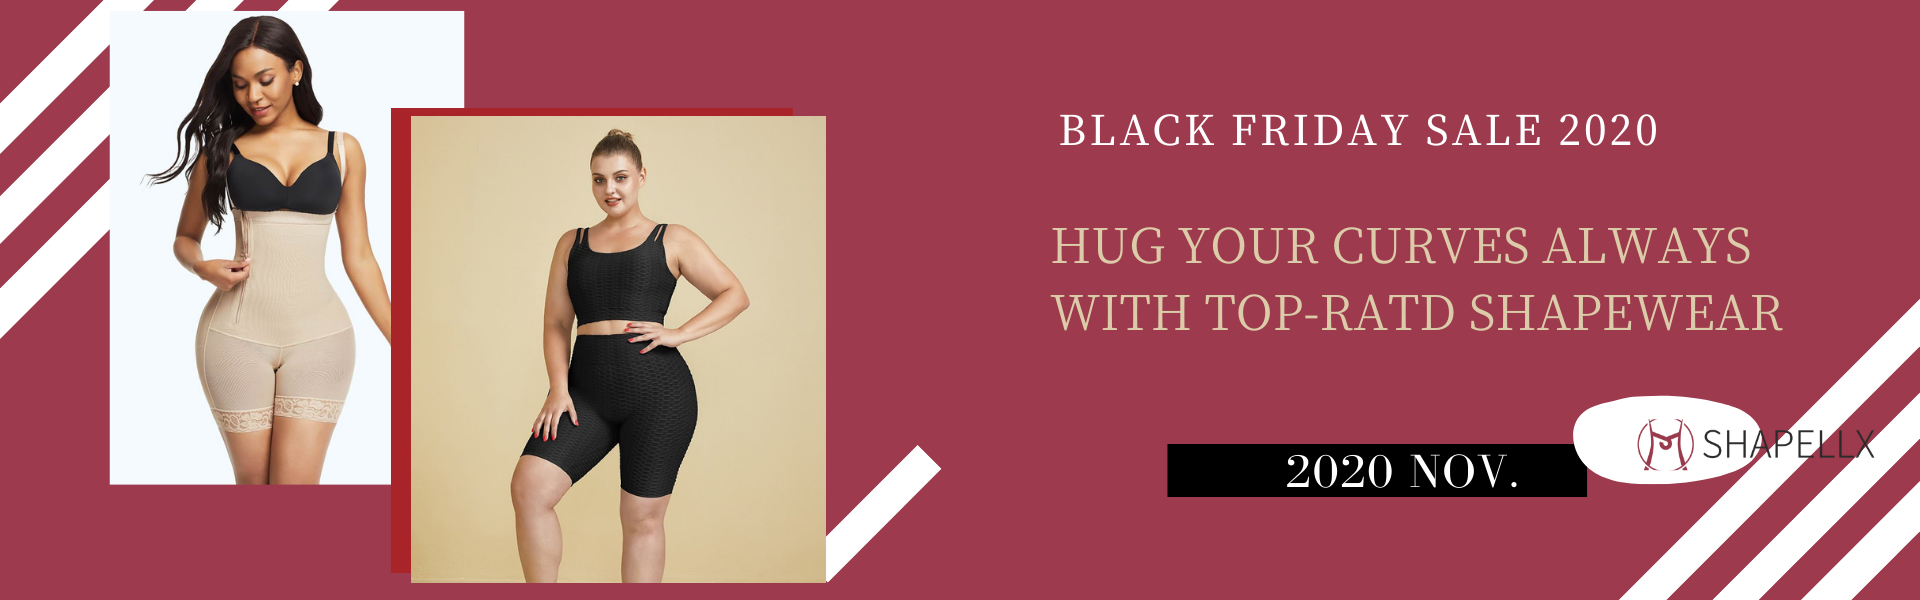 Hug Your Curves Always With Top-Rated Shapewear